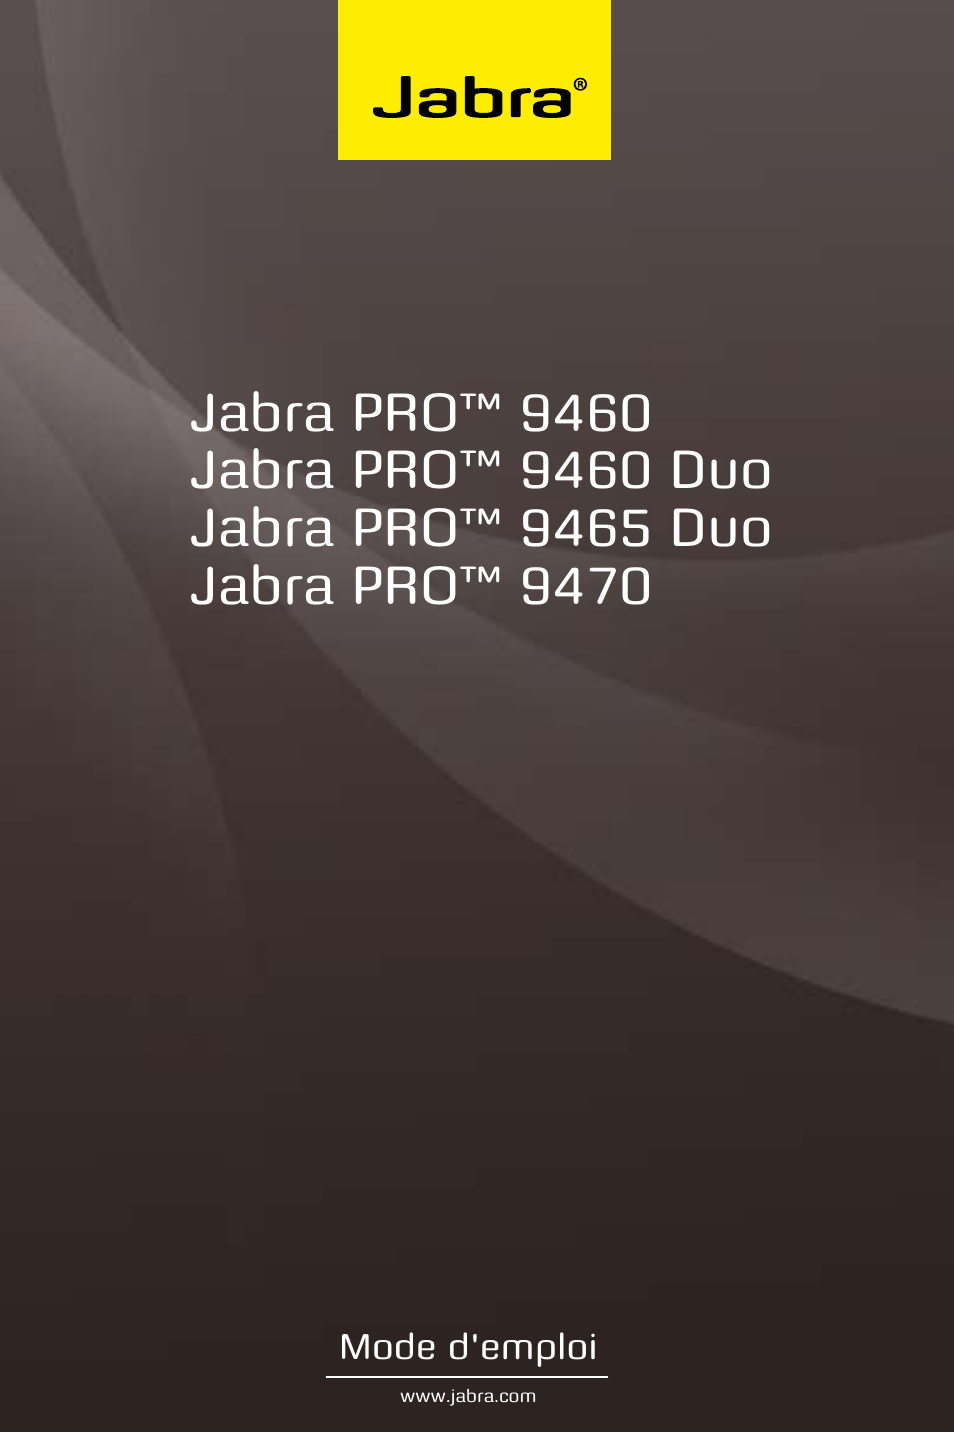 jabra pro 9470 user manual manuel d 39 utilisation pages 43 aussi pour pro 9465 duo user. Black Bedroom Furniture Sets. Home Design Ideas